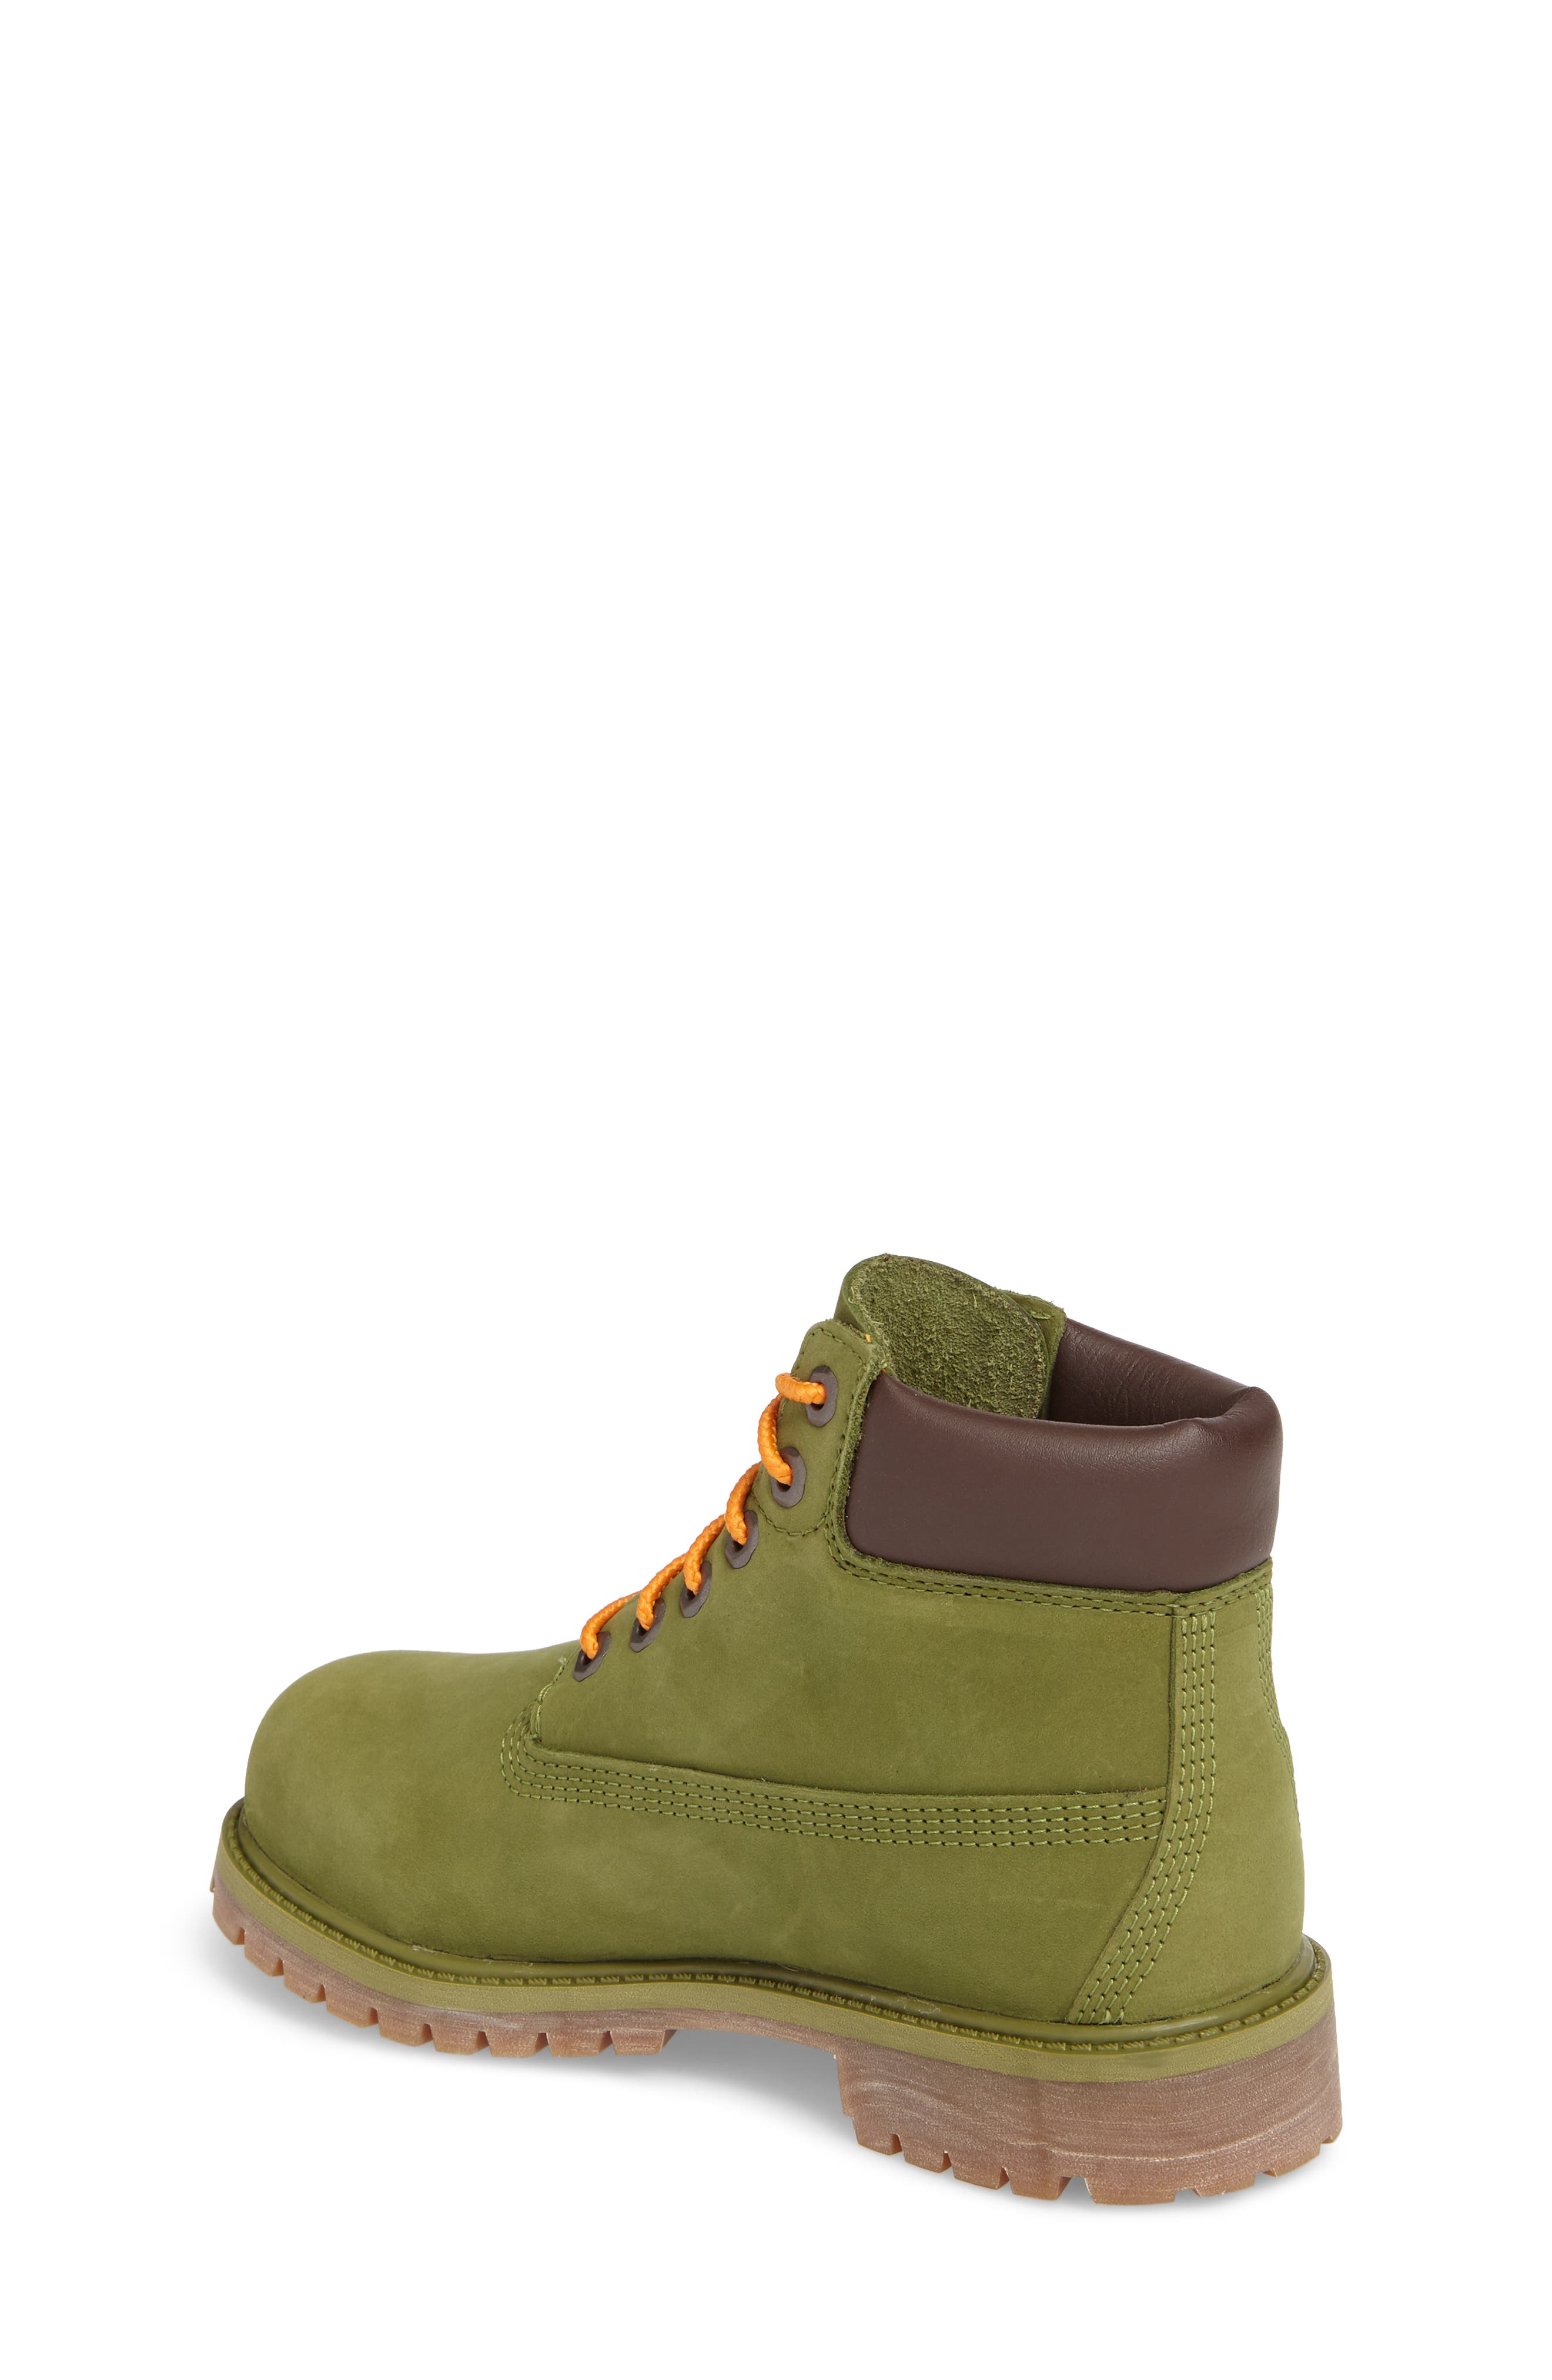 Alternate Image 2  - Timberland 6-Inch Premium Waterproof Boot (Walker, Toddler, Little Kid & Big Kid)